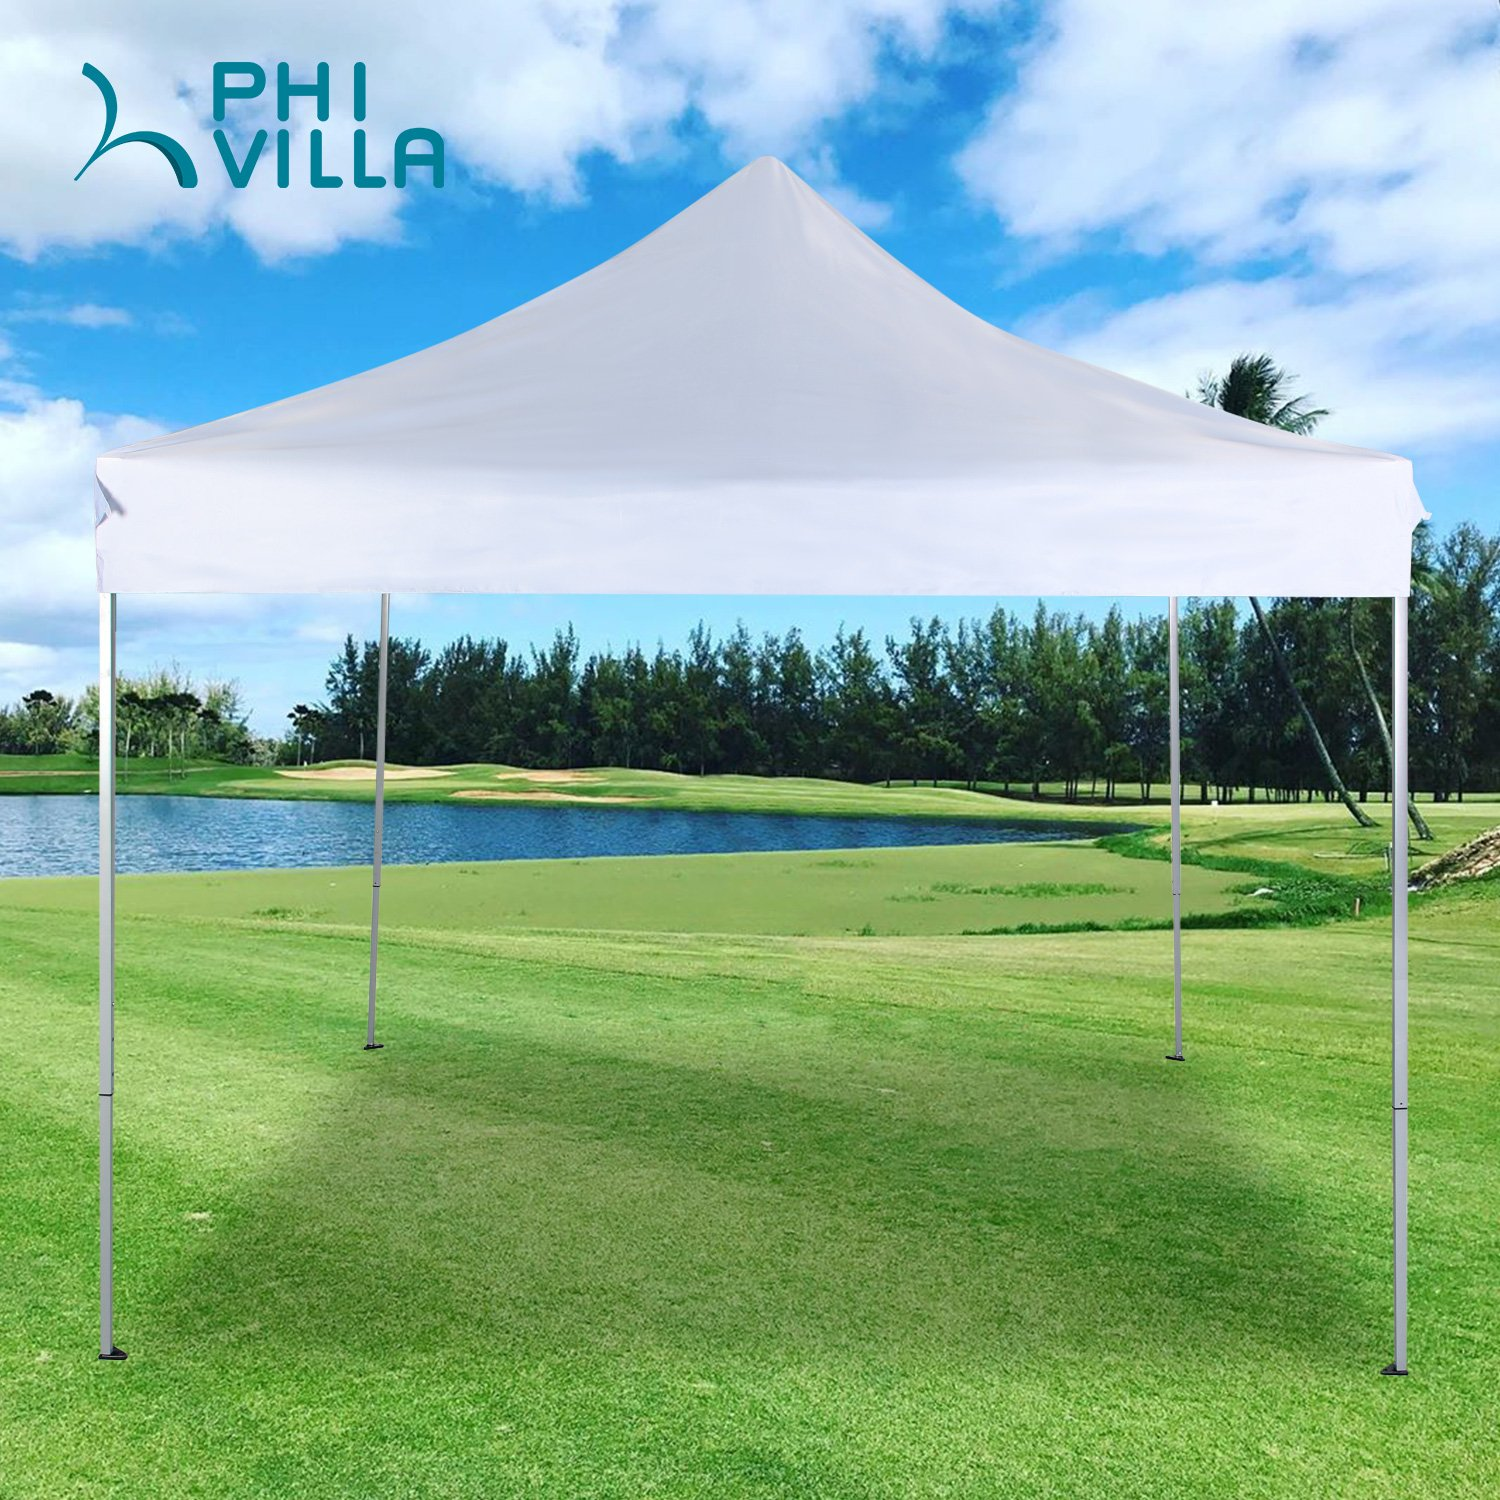 PHI VILLA 10' x 10' Instant Commercial Canopy Straight Leg